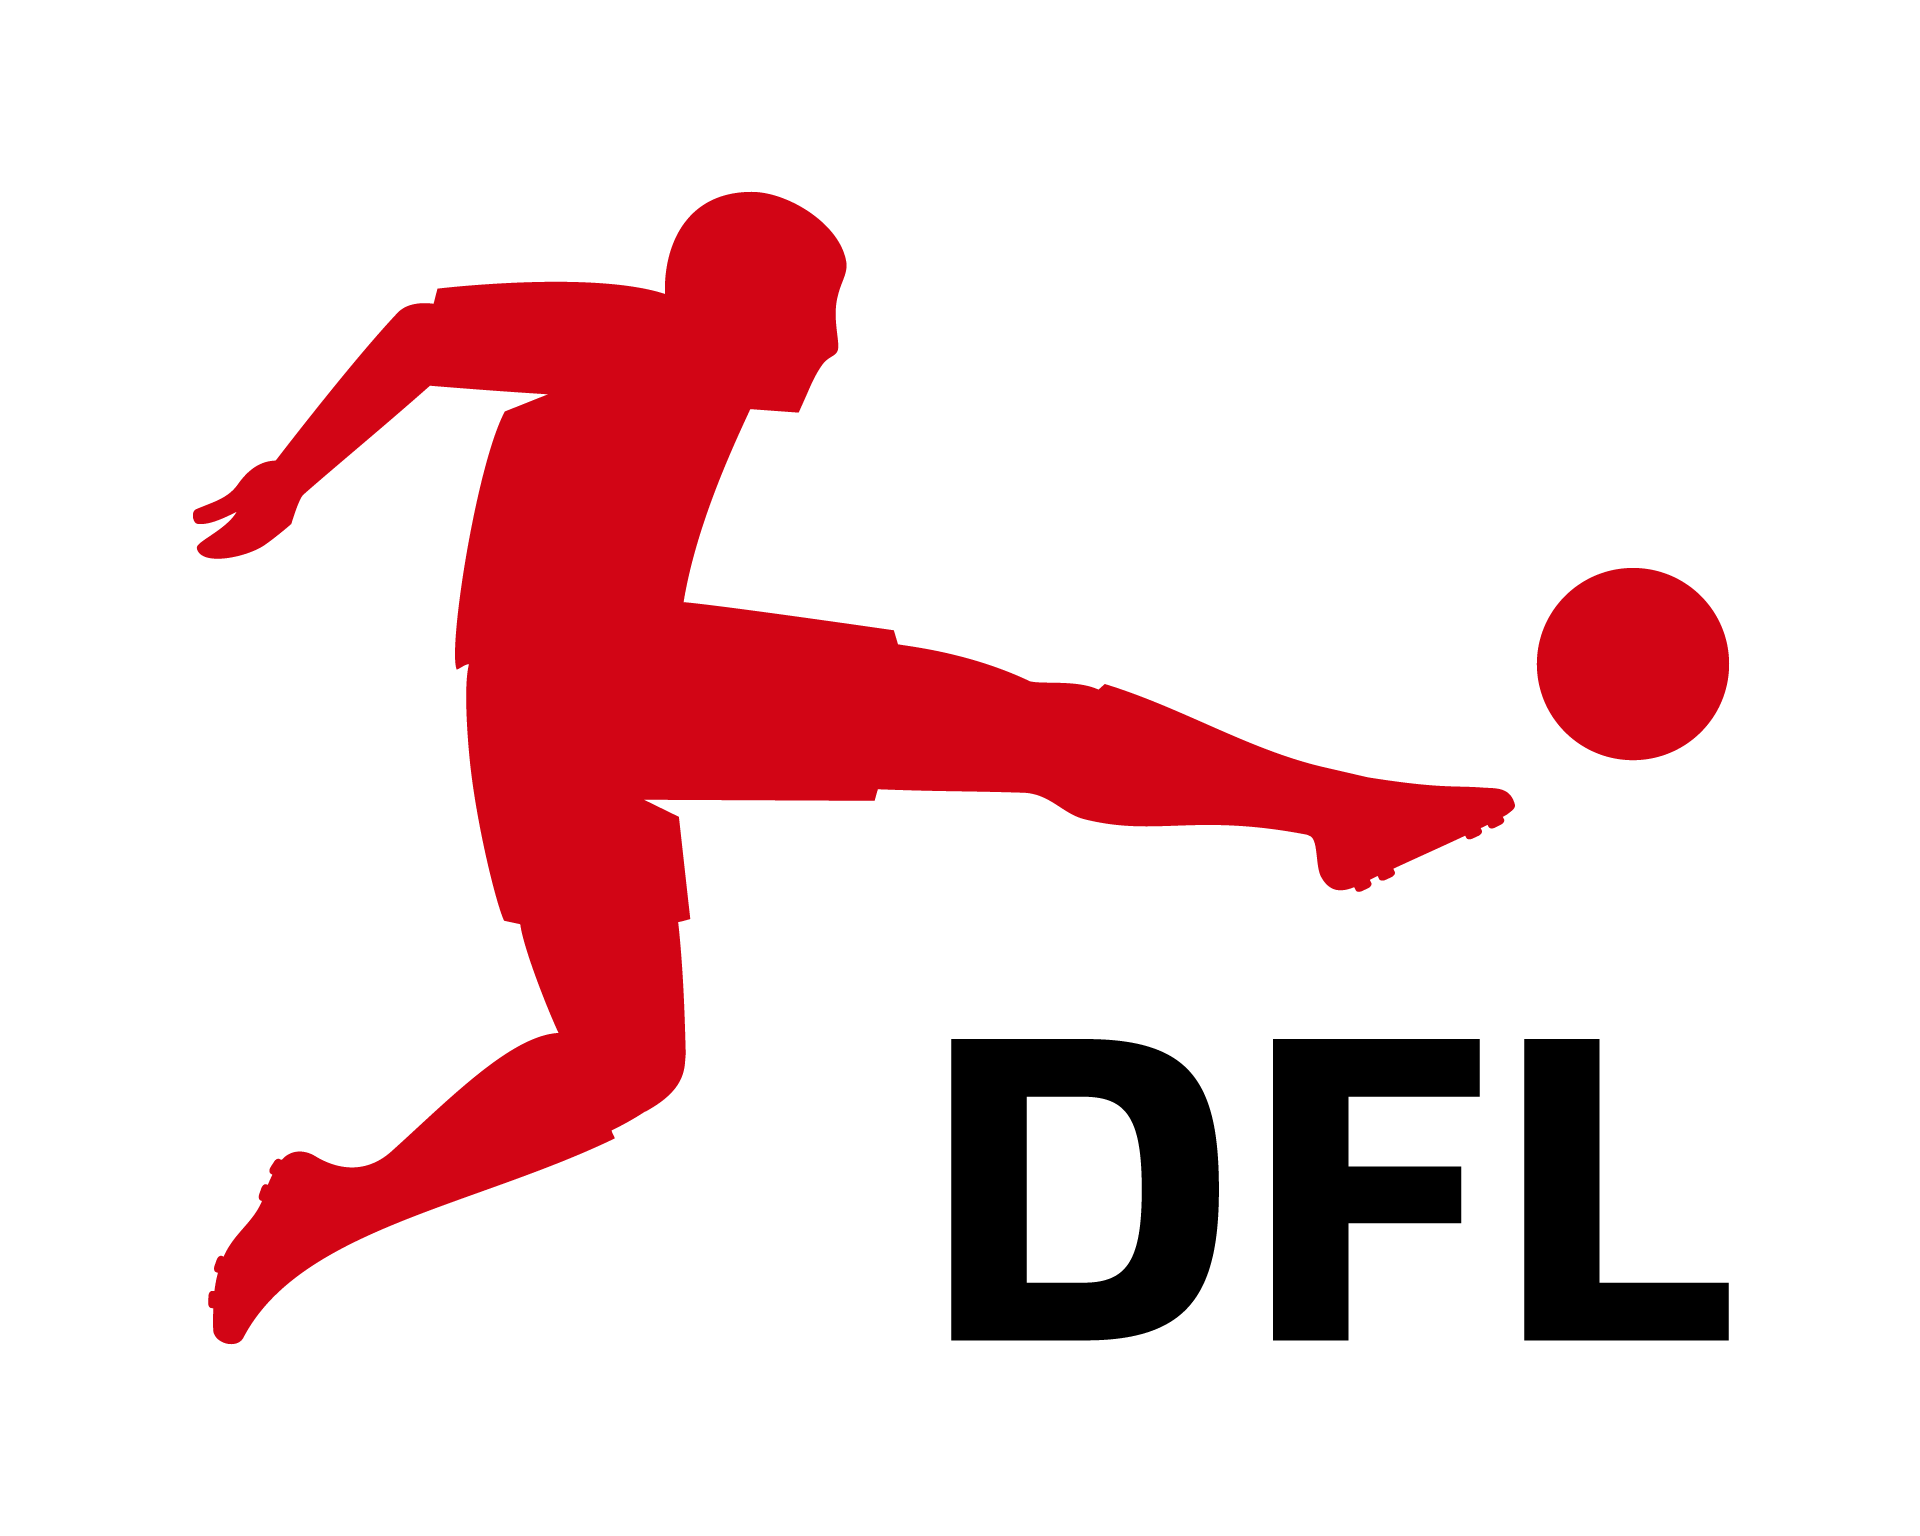 Logo of the German Football League(DFL) - red Silhouette of a football player kicking a ball. Underneath the stretched foot the name DFL